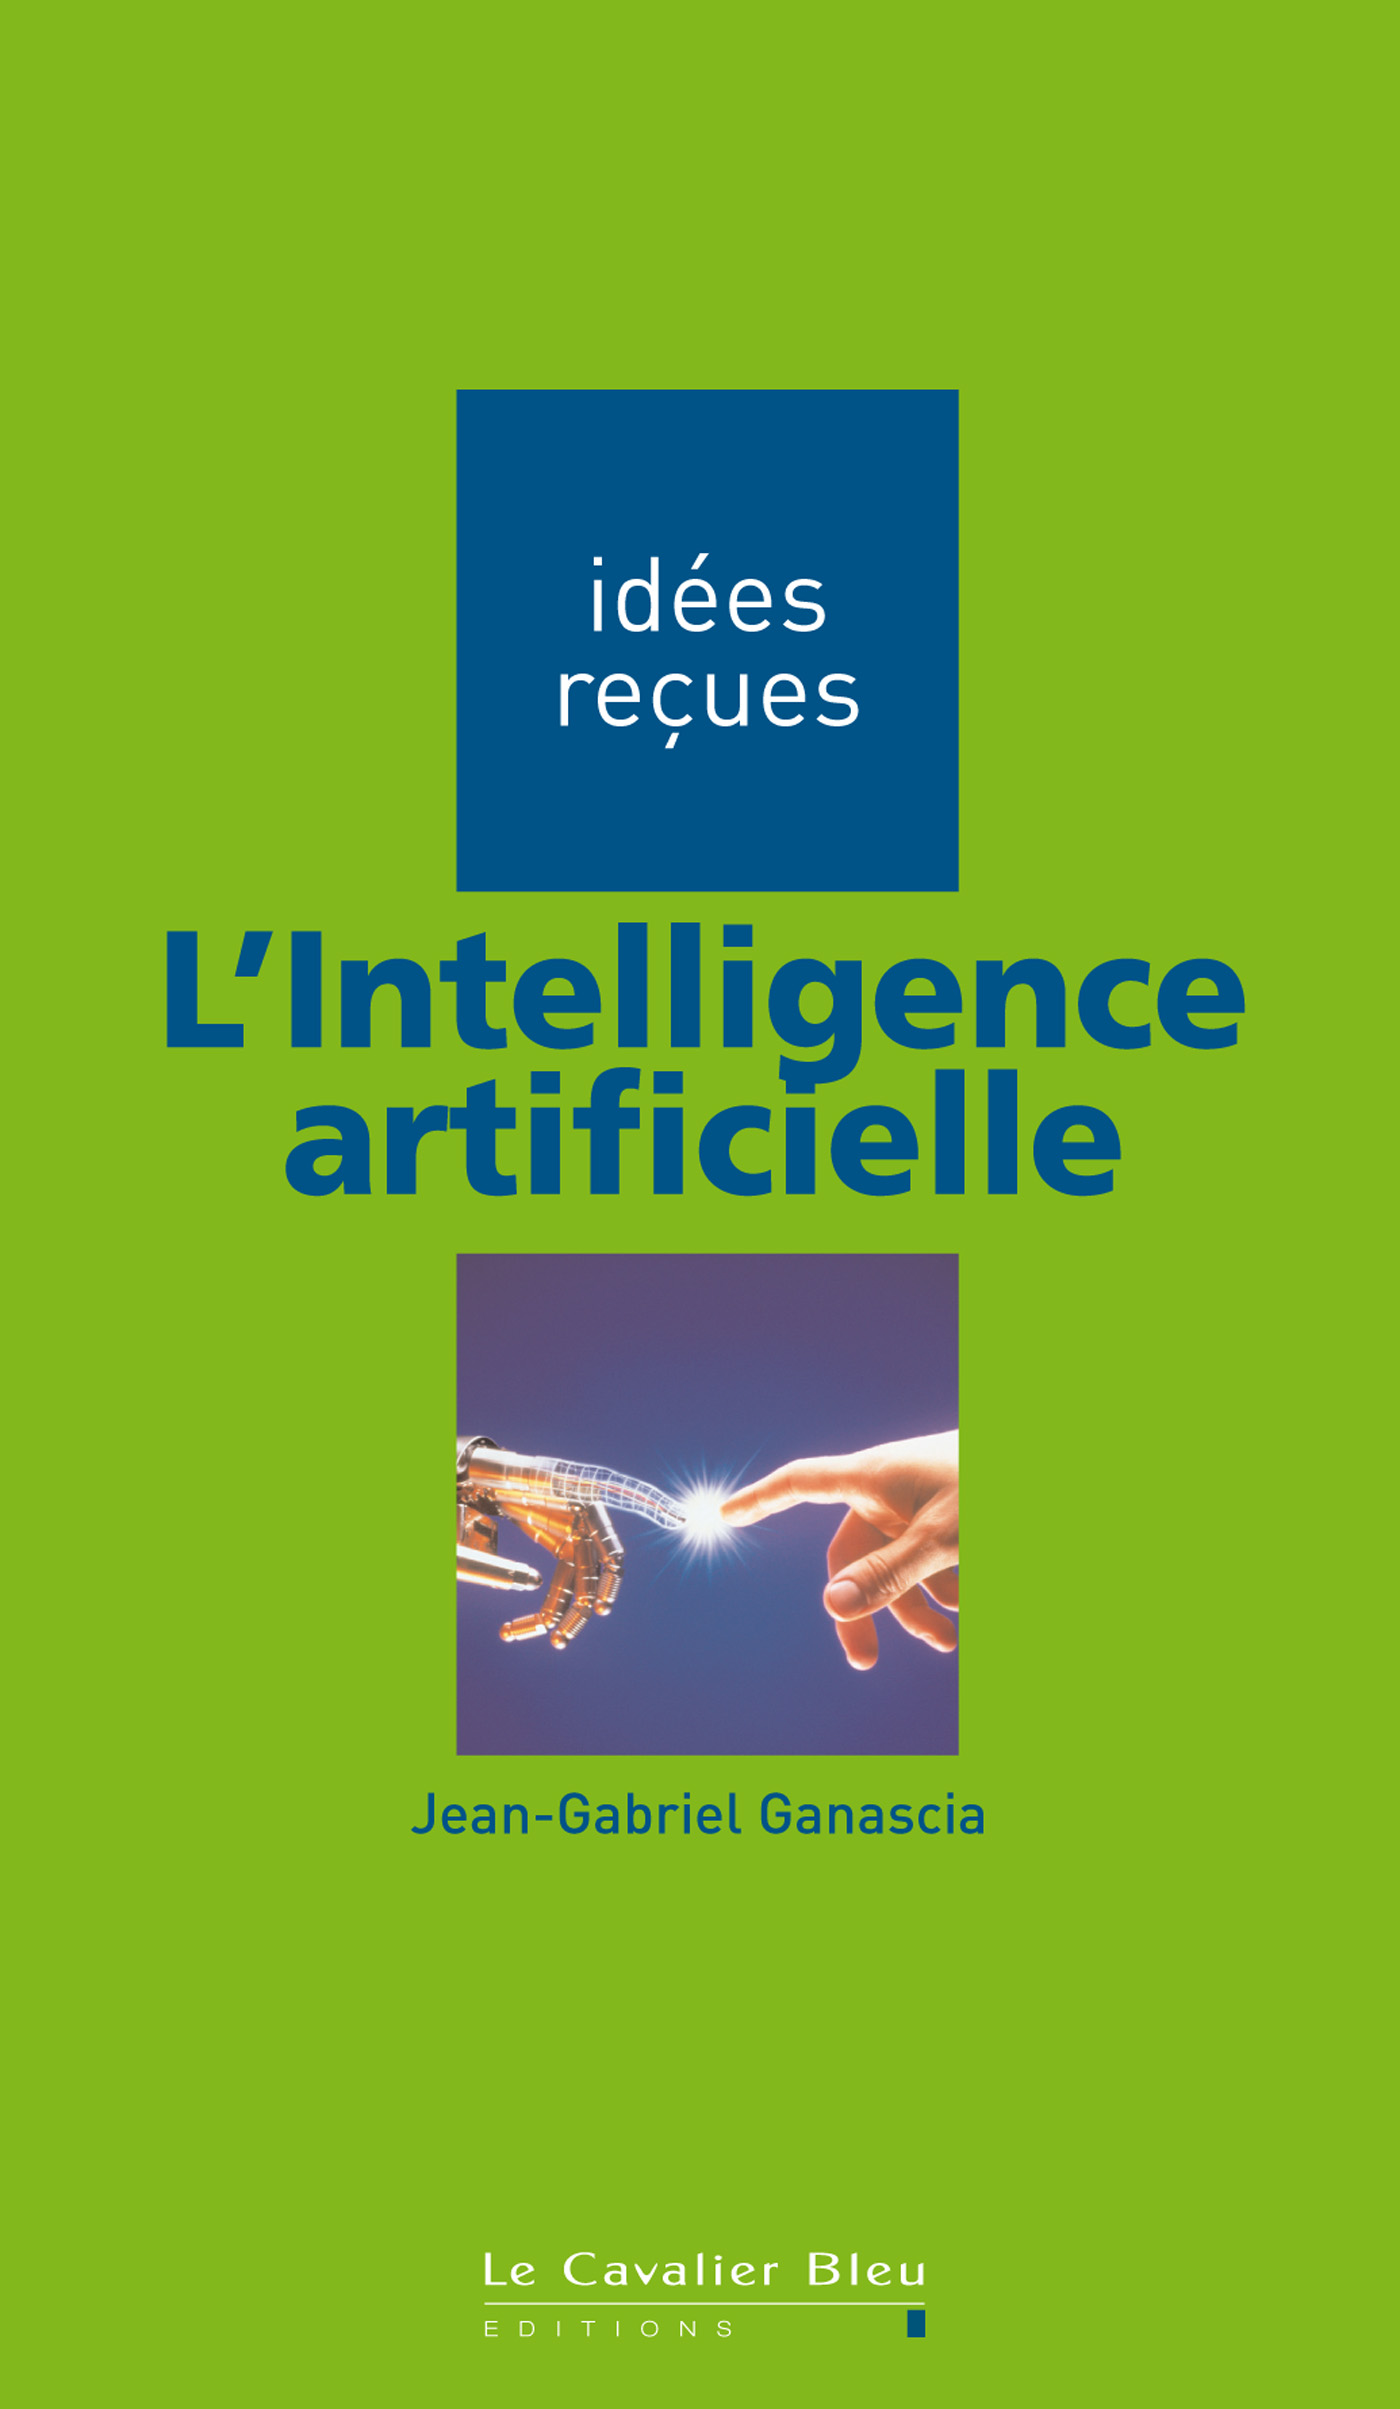 Vignette du livre L'intelligence artificielle: Sciences & techniques